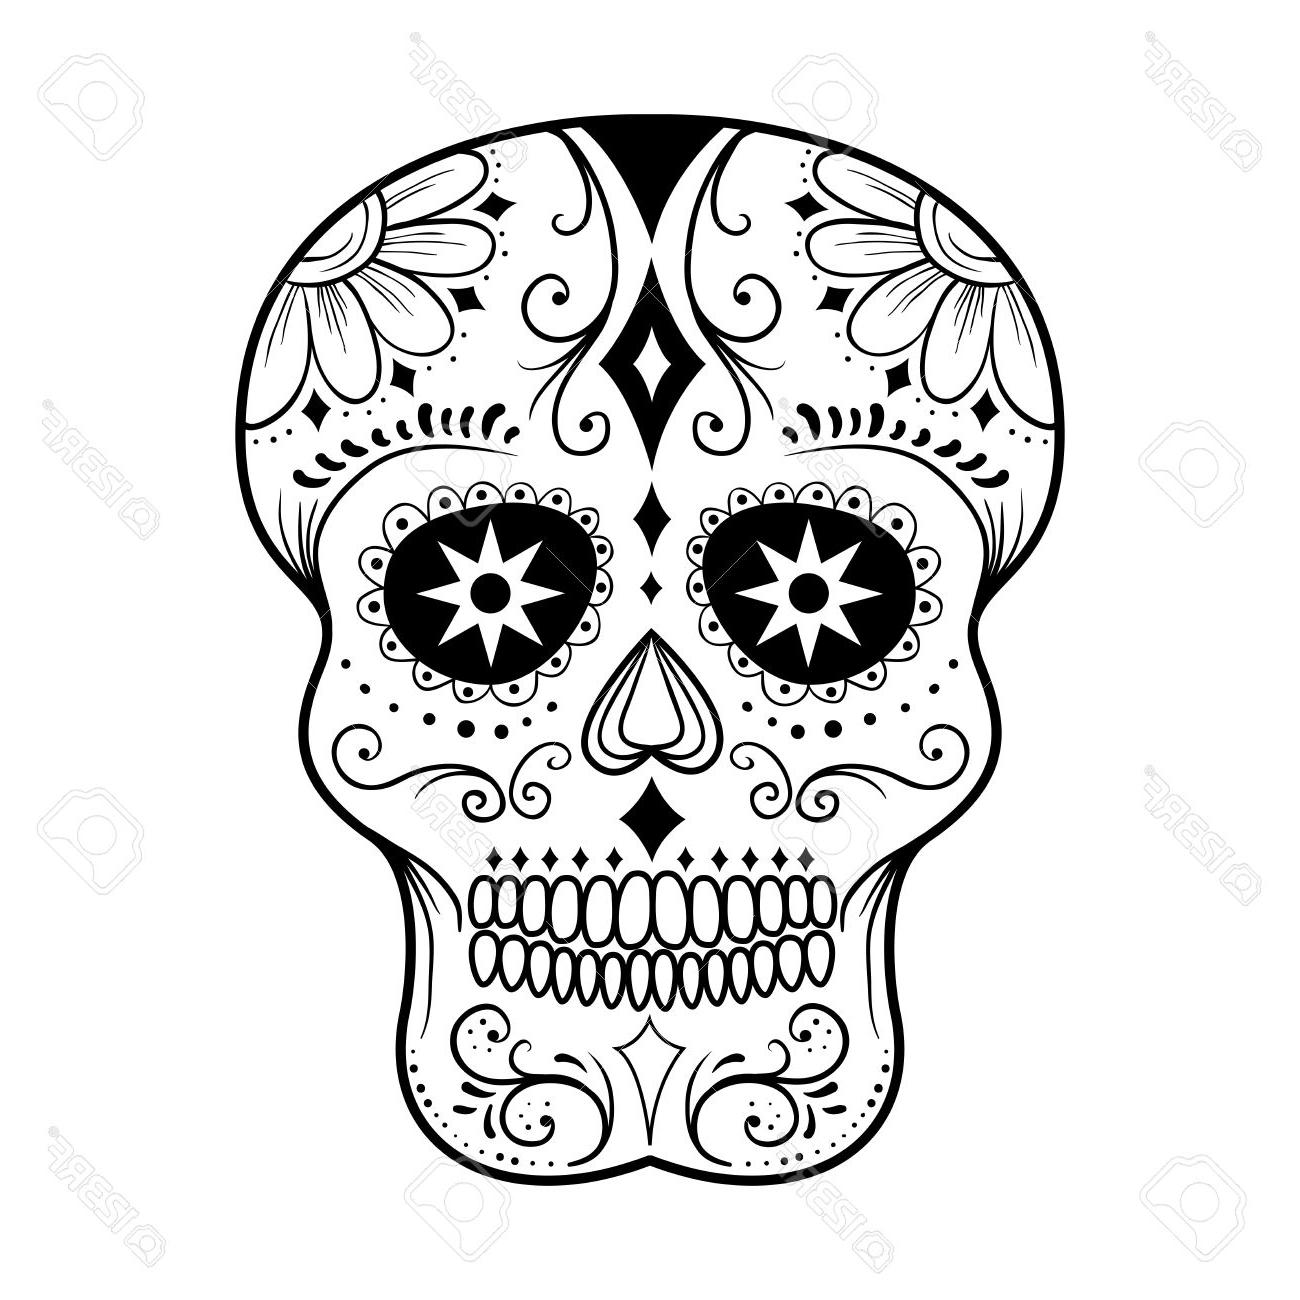 colorful sugar skull traditional colorful sugar skull art vector illustration sugar skull colorful